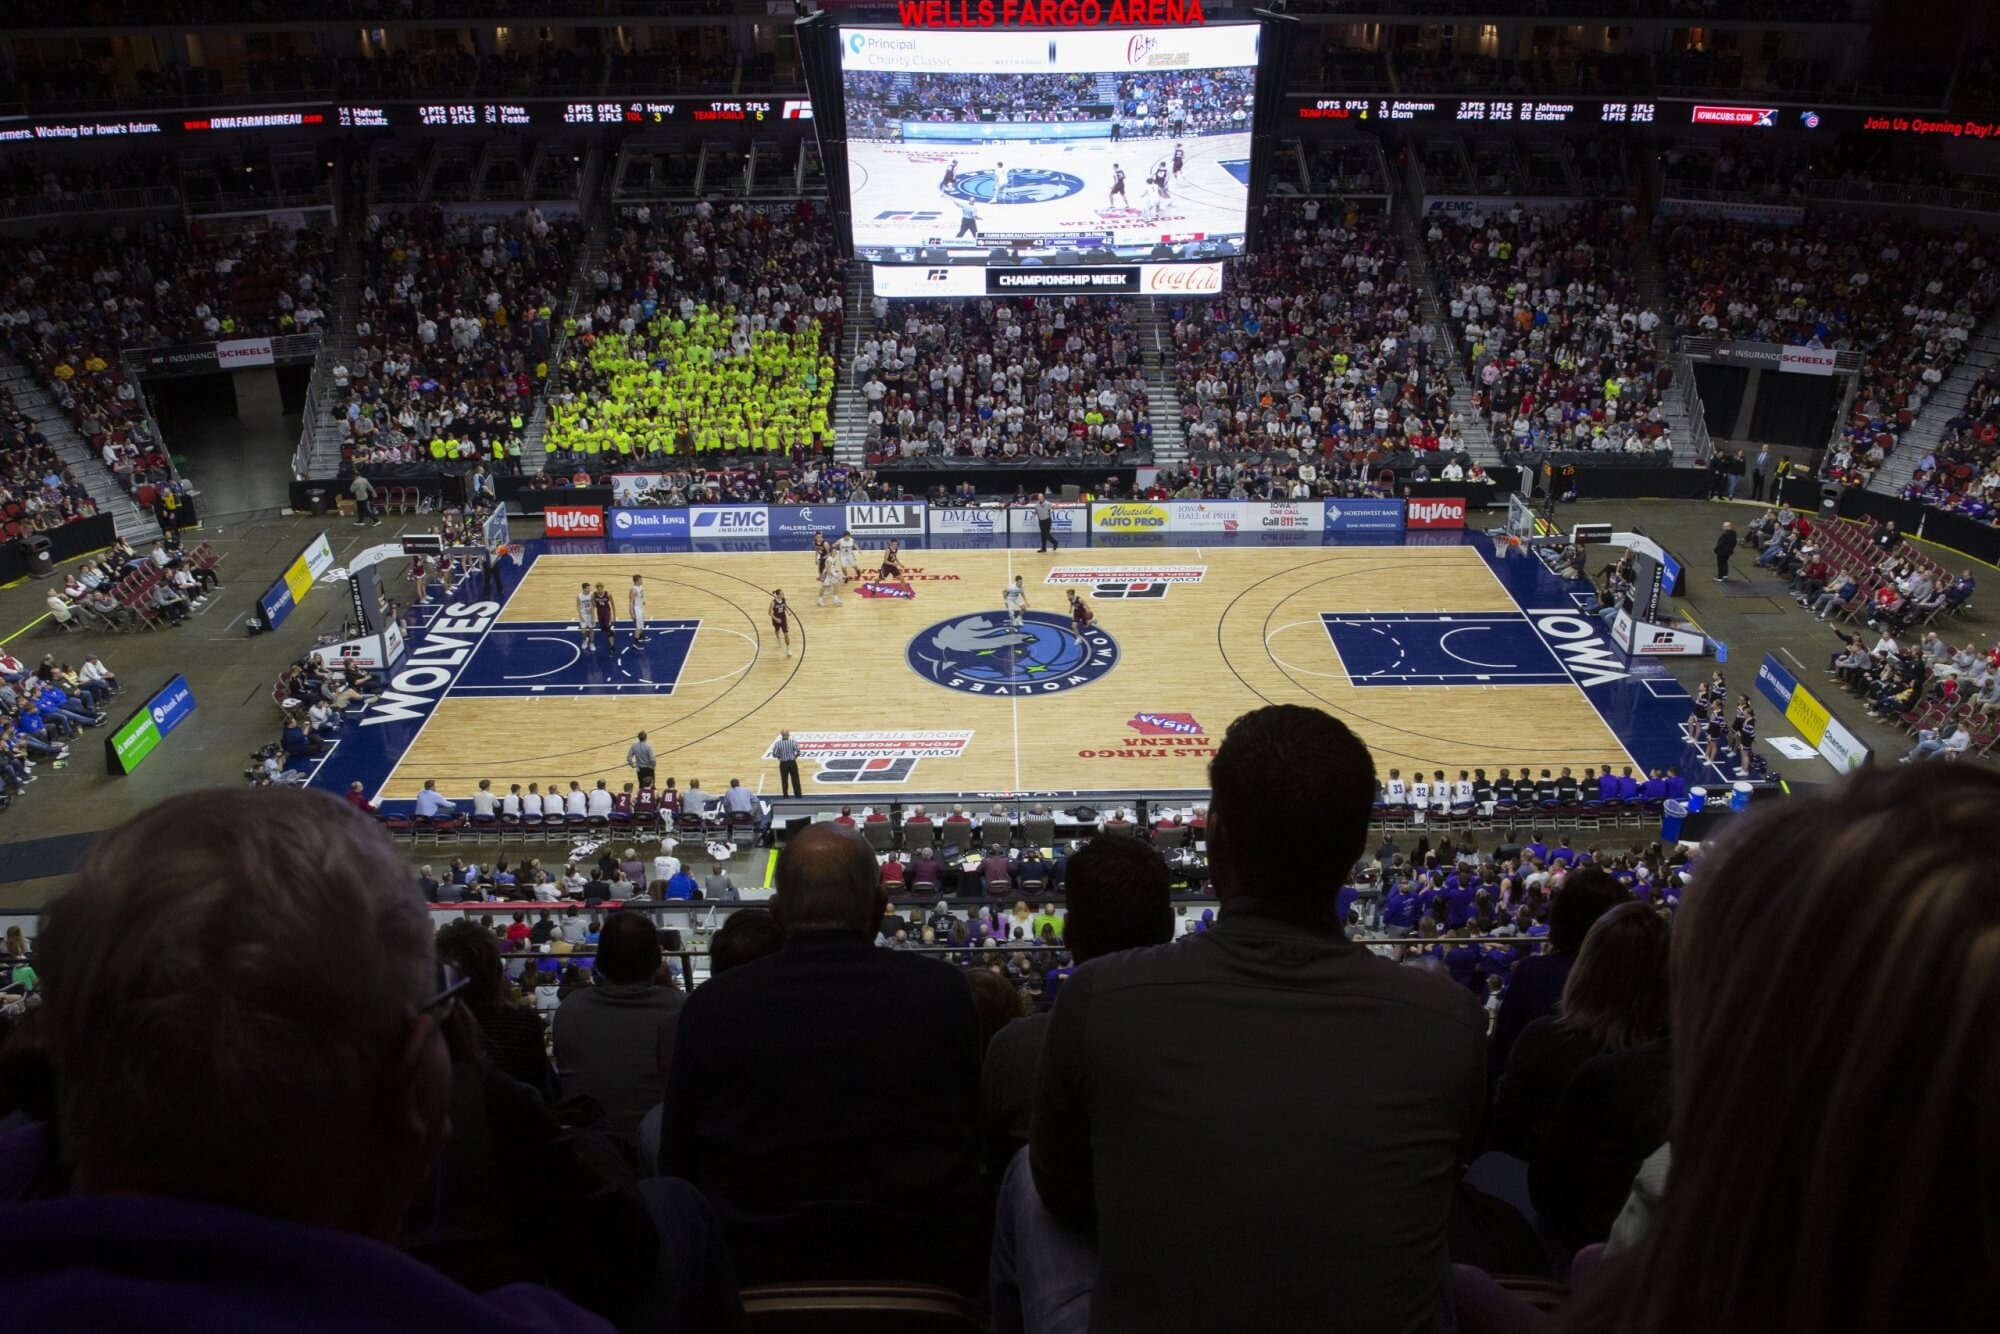 Basketball: Spectator restrictions for Friday's finals